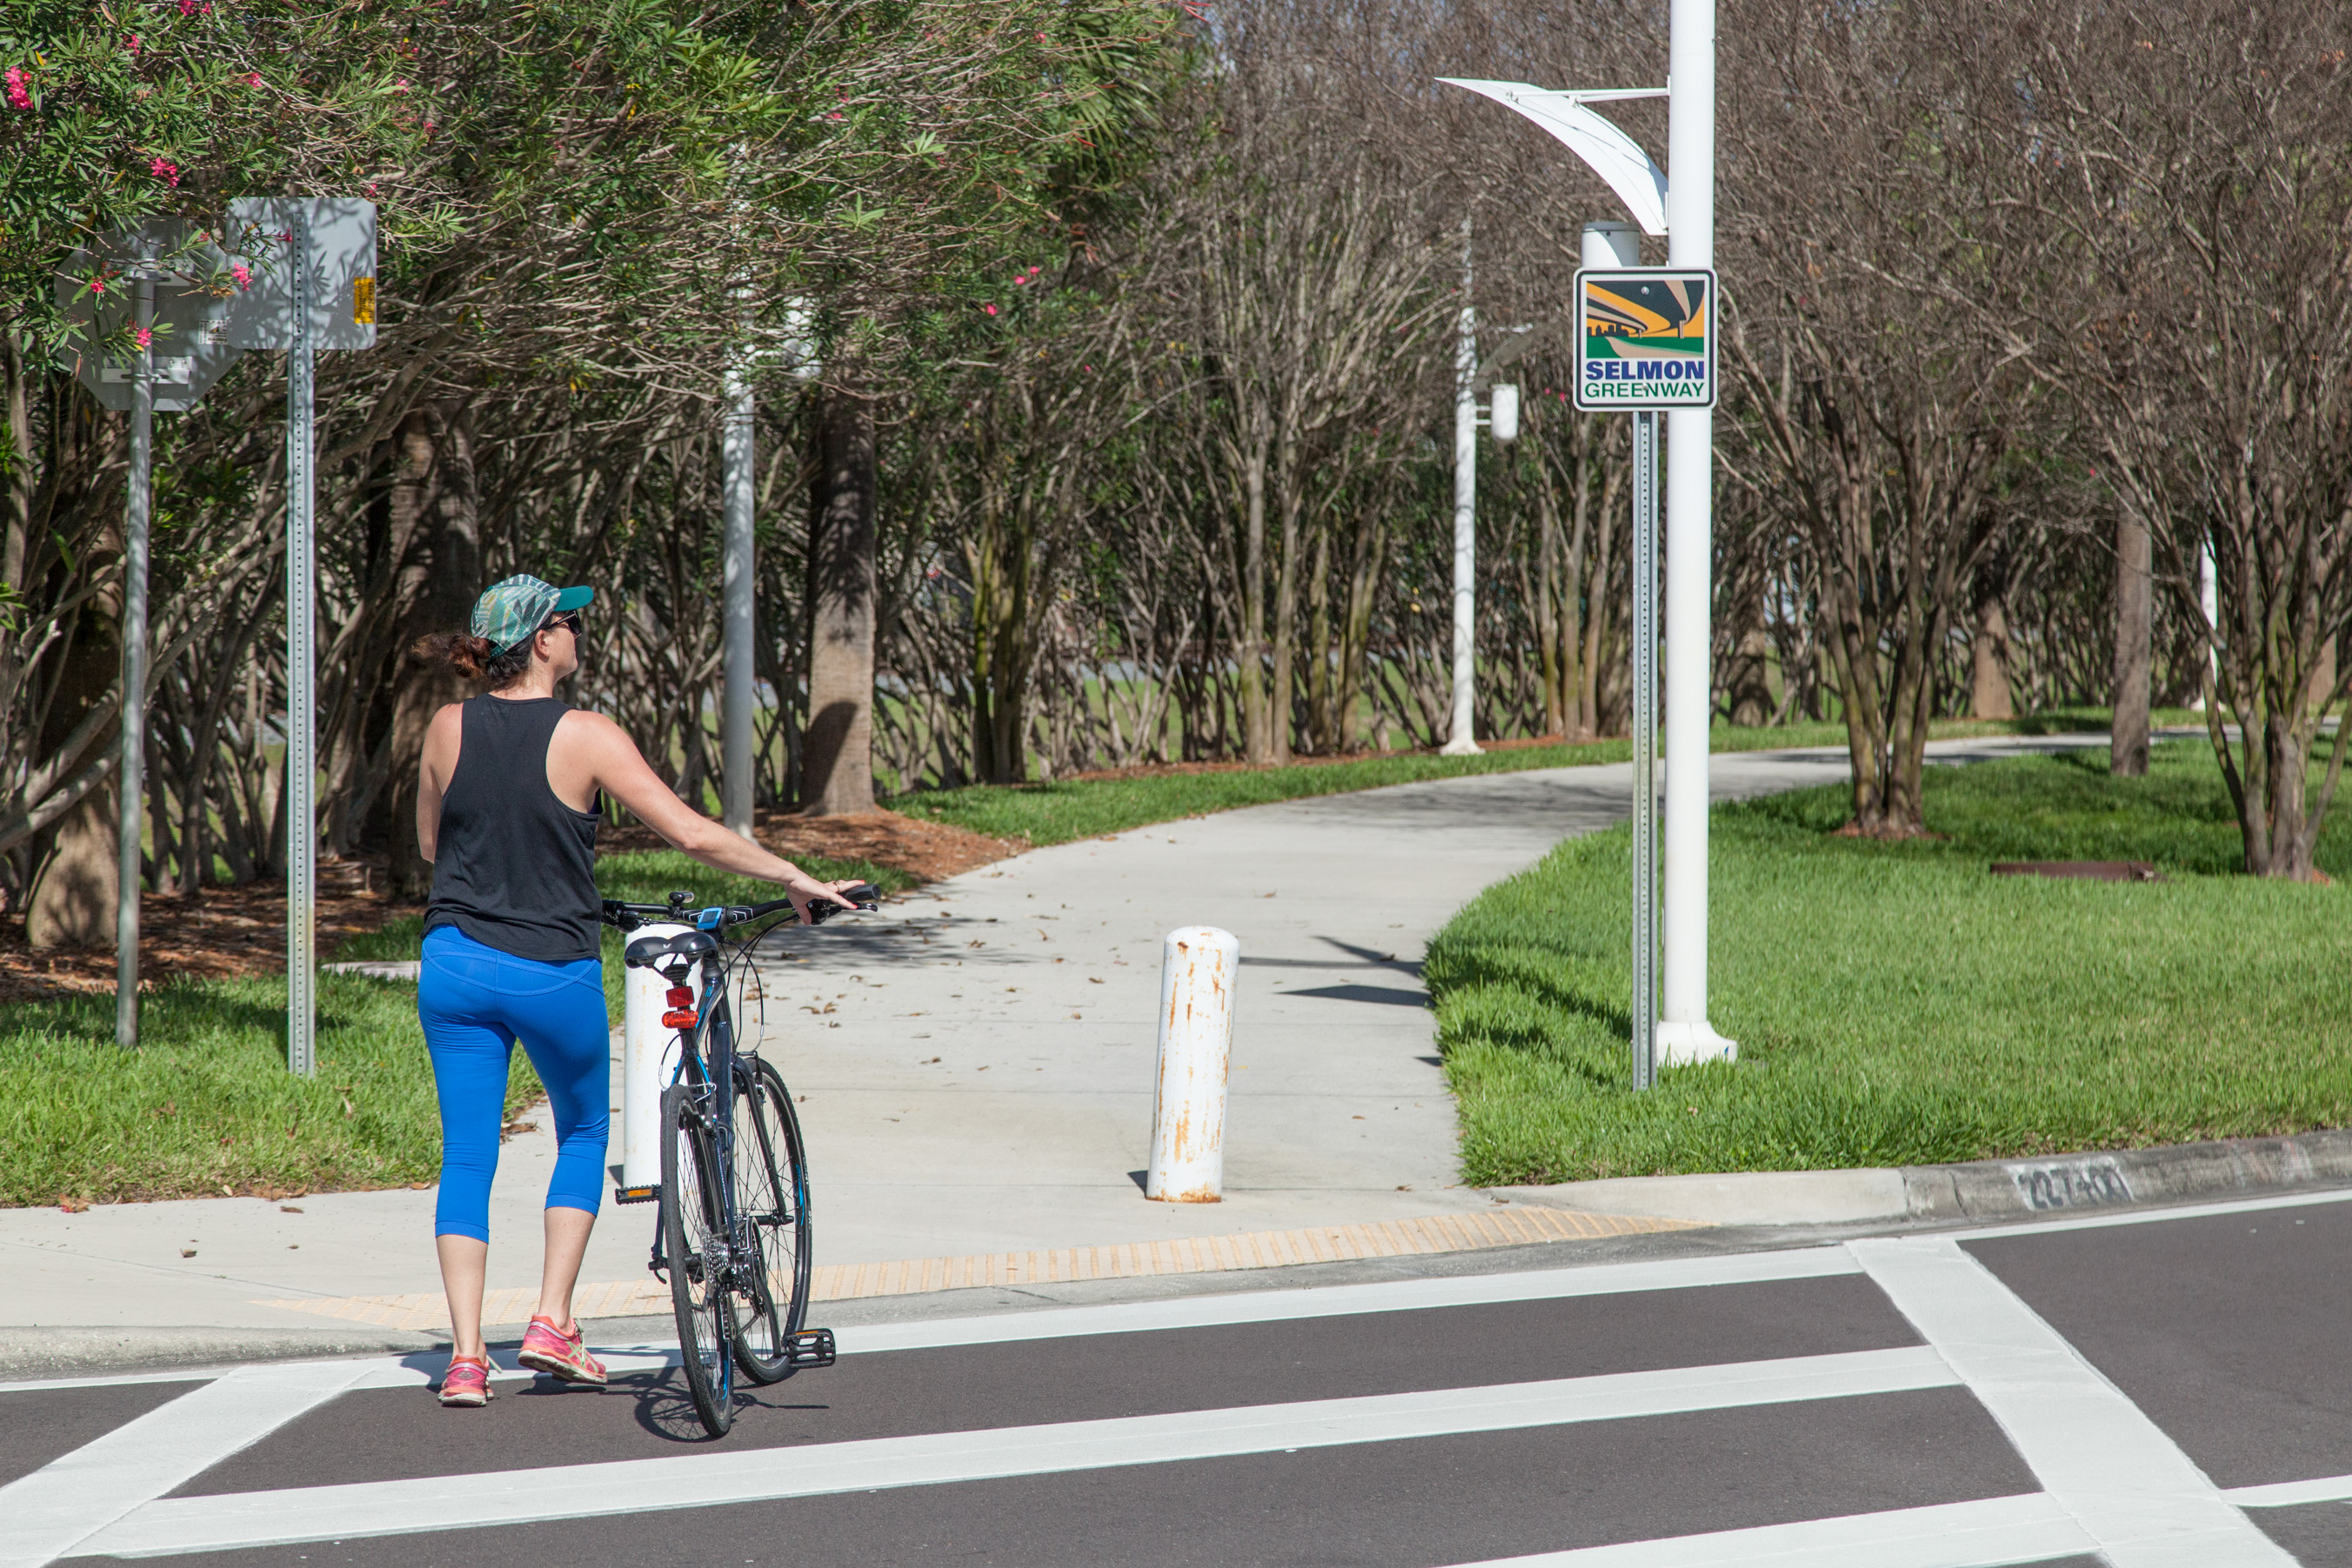 March is Florida Bicycle Month! Bike the Selmon Greenway